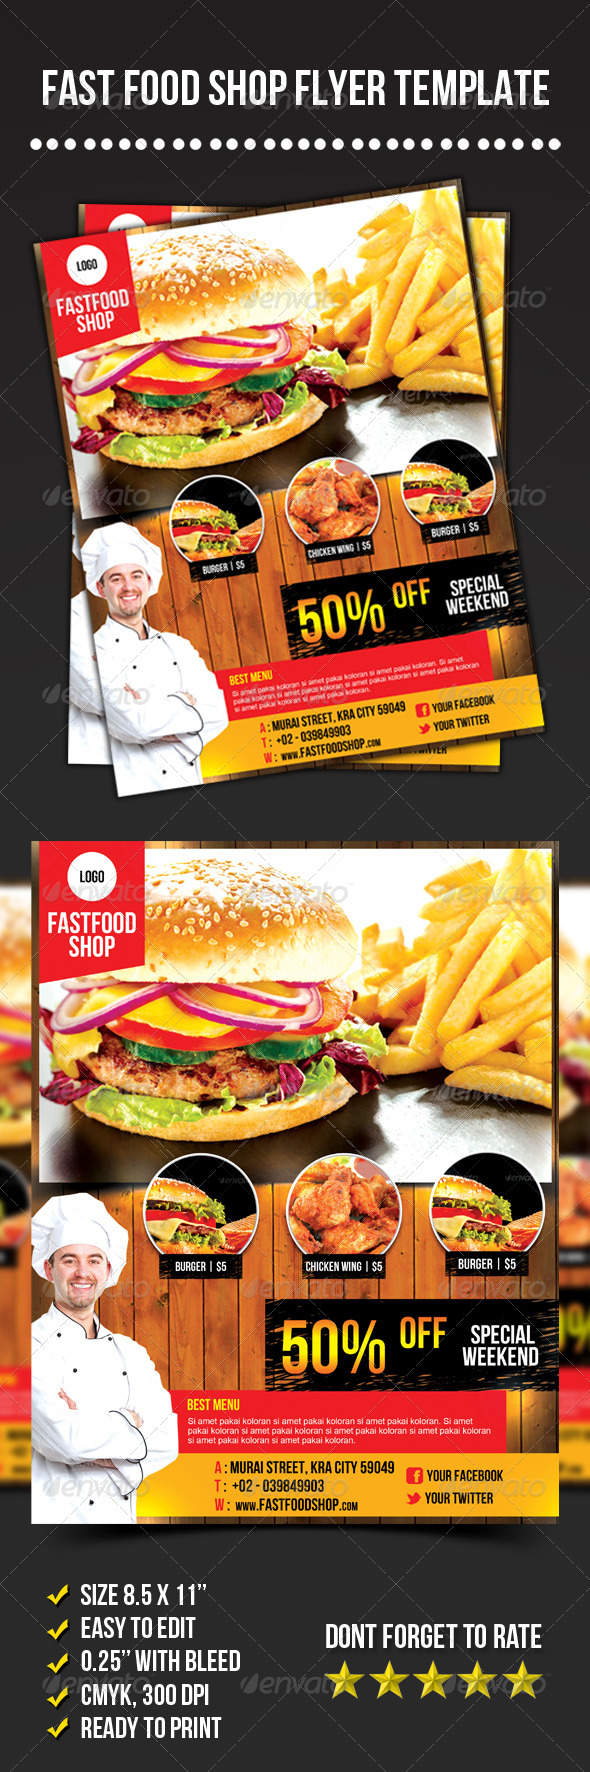 Fast Food Shop Flyer - Restaurant Flyers